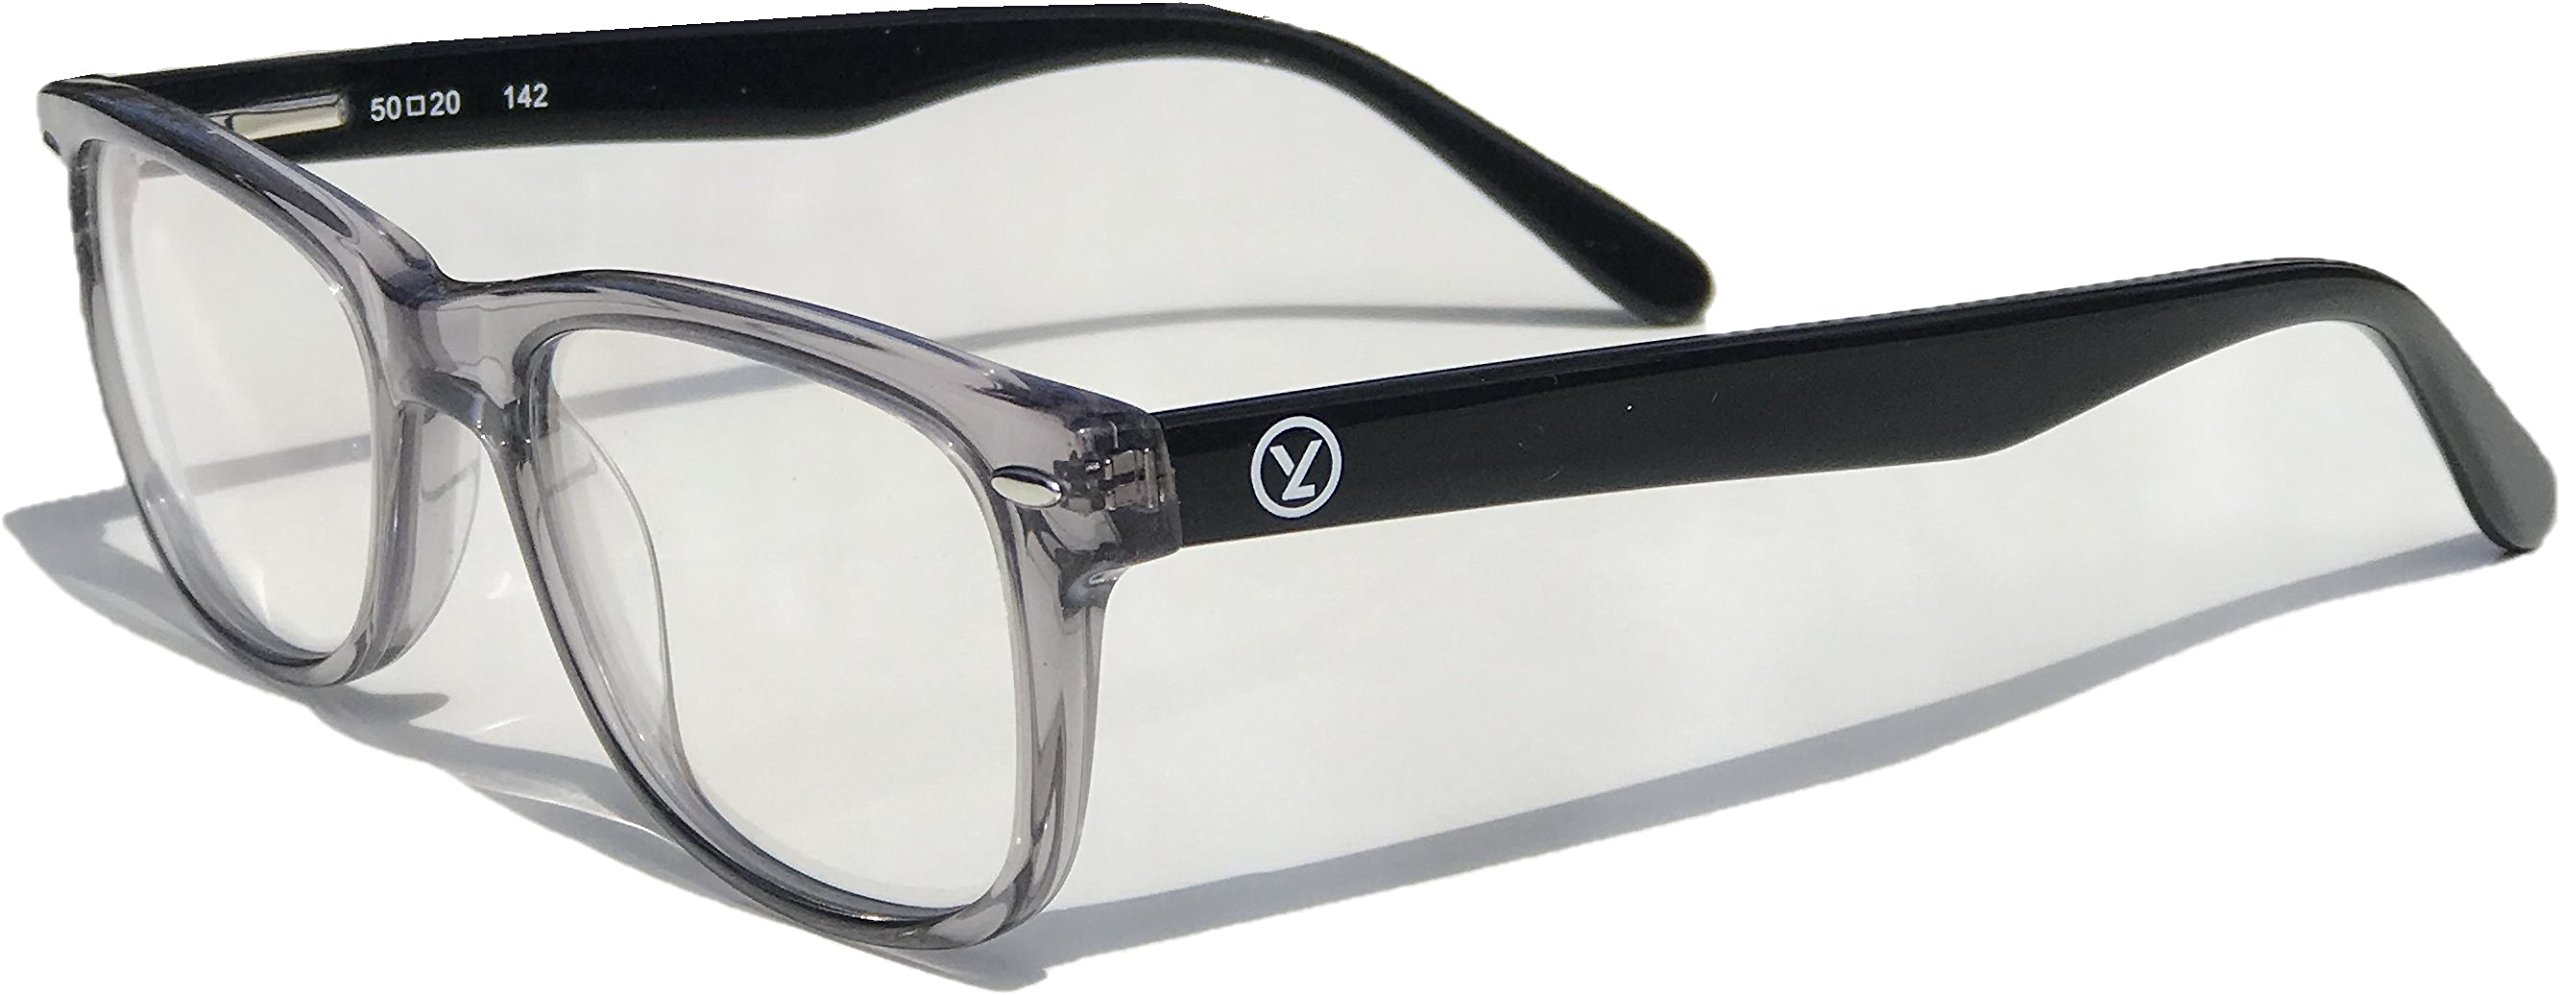 Computer Gaming/Reading/Work Glasses Anti-Blue Light Clear Lens - Reduces Eye Strain/Fatigue/Headaches – 100% UV Protection Transparent Grey Hand-made Frame with Flex Hinges by Yizmo